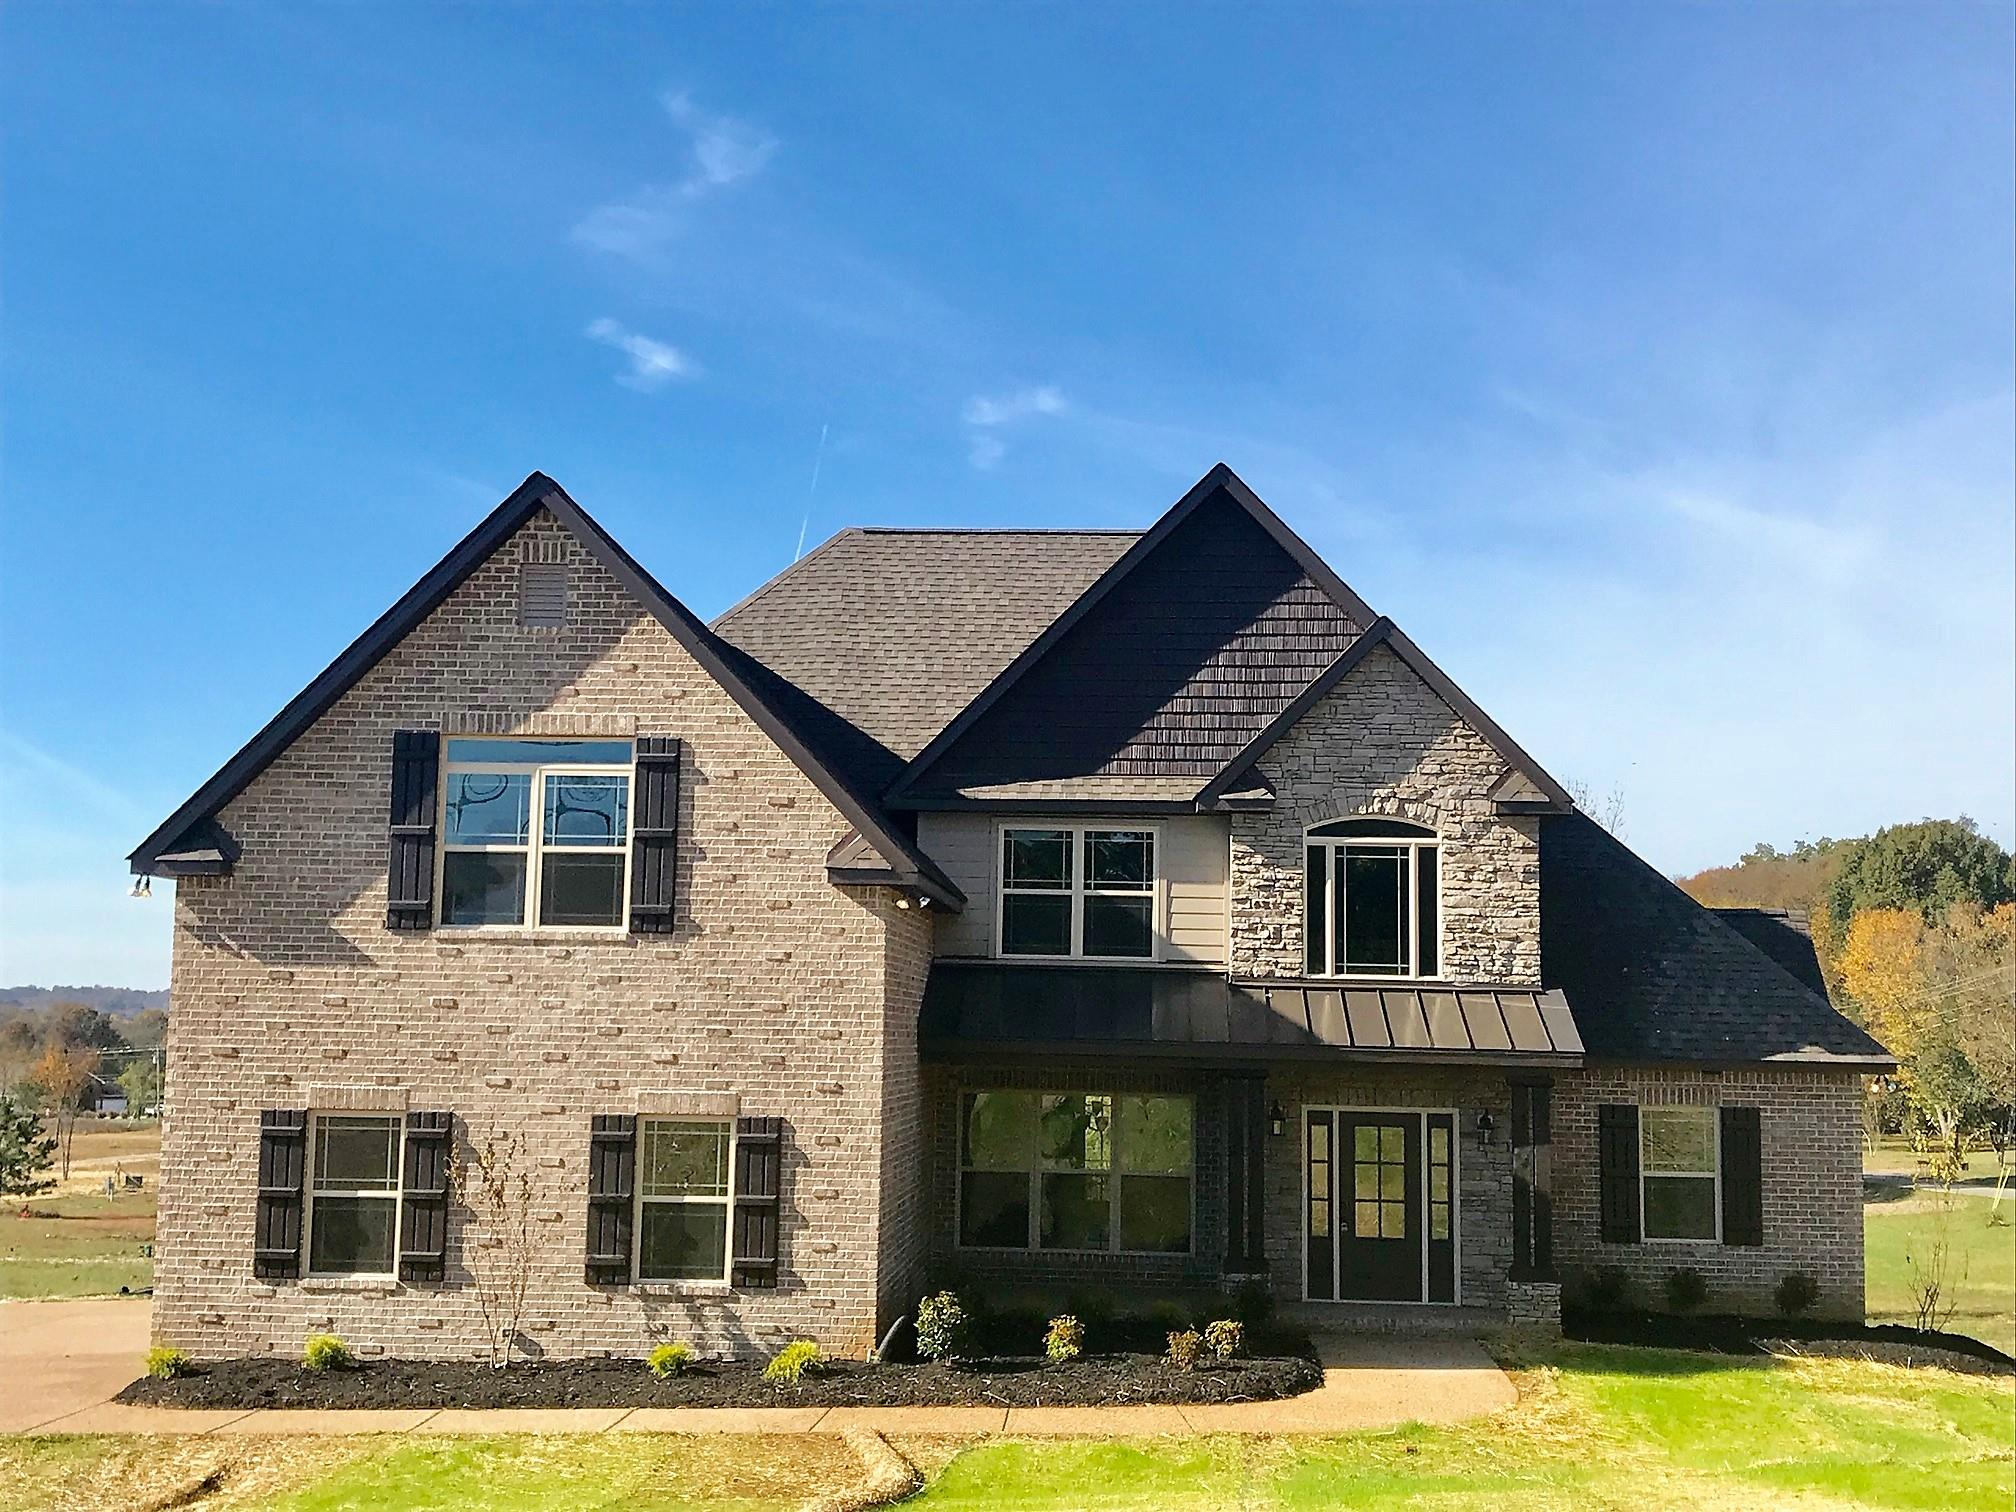 4282 Coles Ferry Pike, Lebanon in Wilson County County, TN 37087 Home for Sale